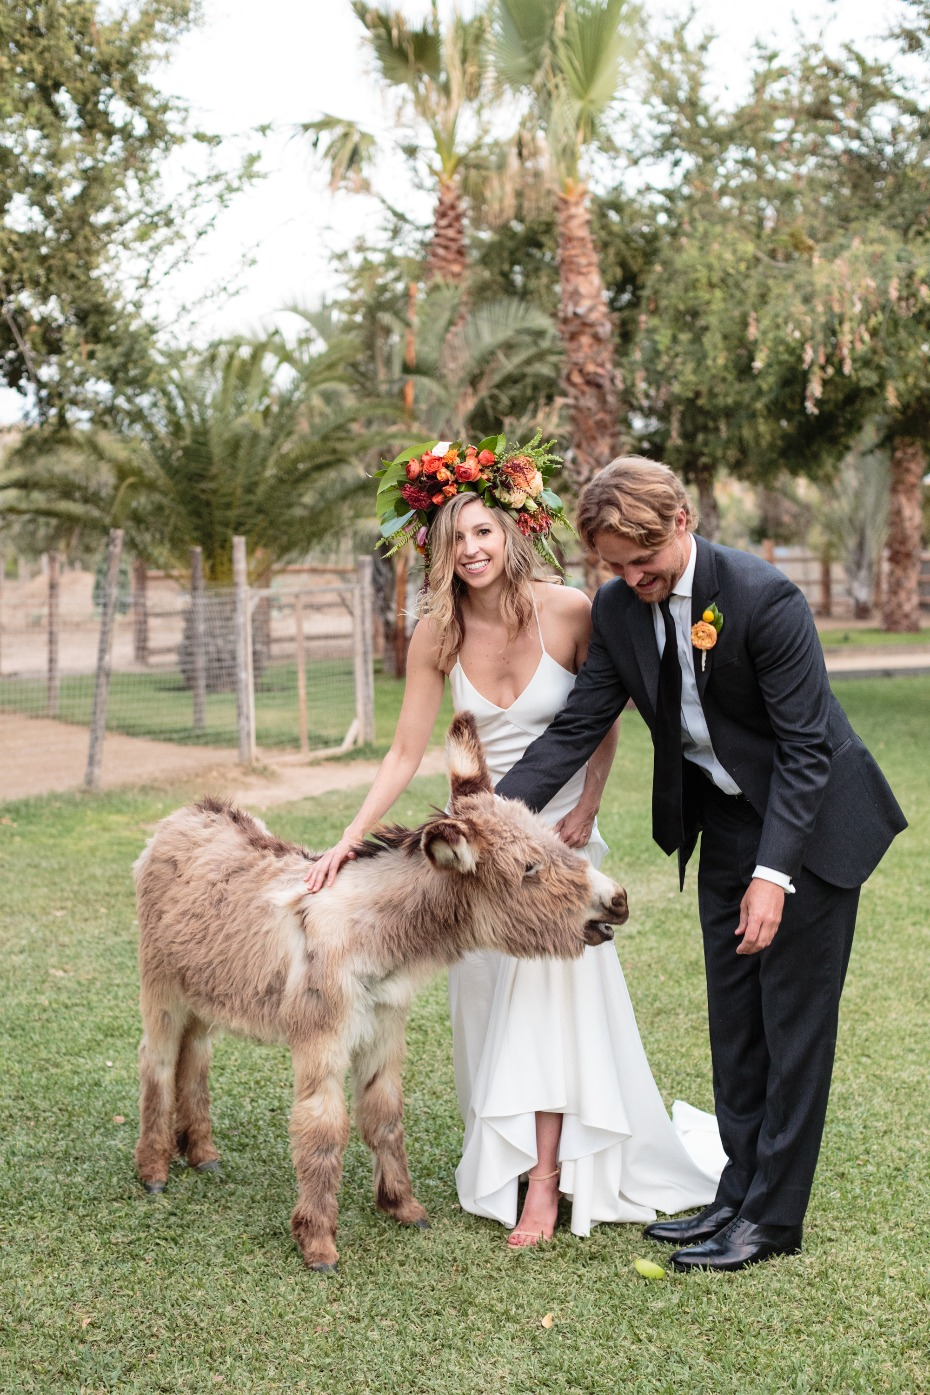 Tara and Dylan Ramsey Wedding in Cabo San Lucas, Mexico